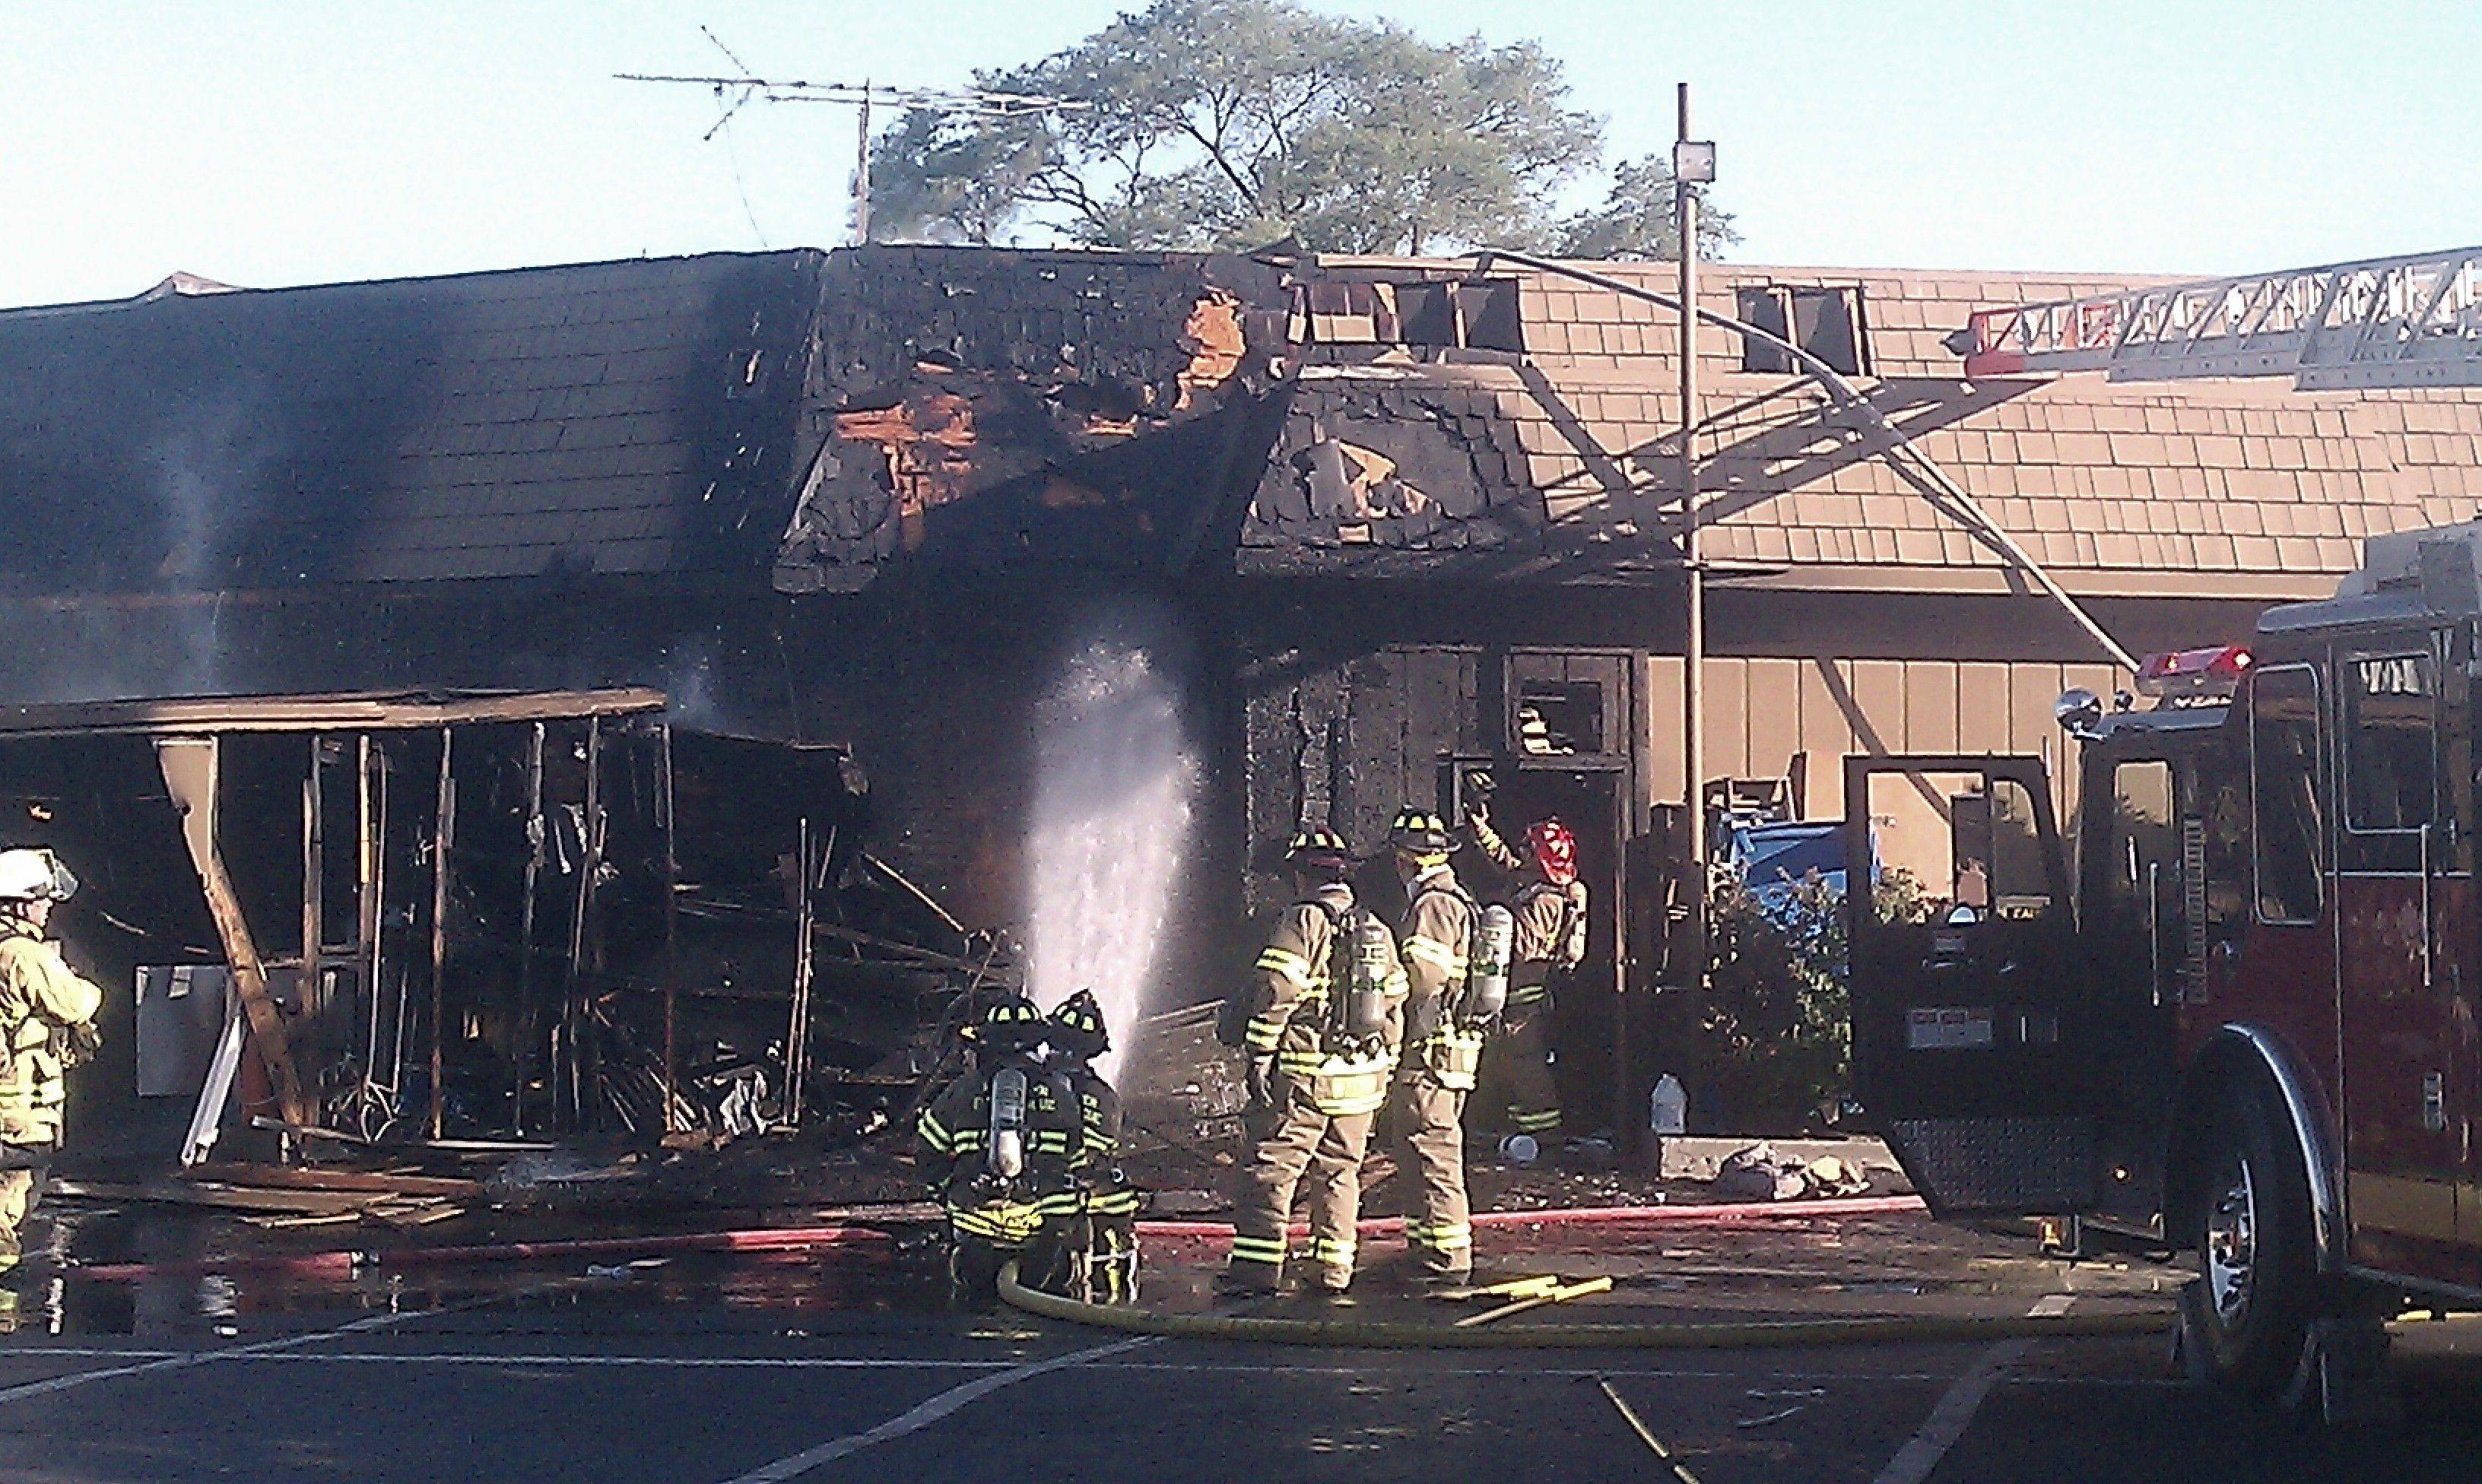 The fire at Salerno's on the Fox in St. Charles was still burning as of 7:25 p.m. Wednesday due to a gas leak.